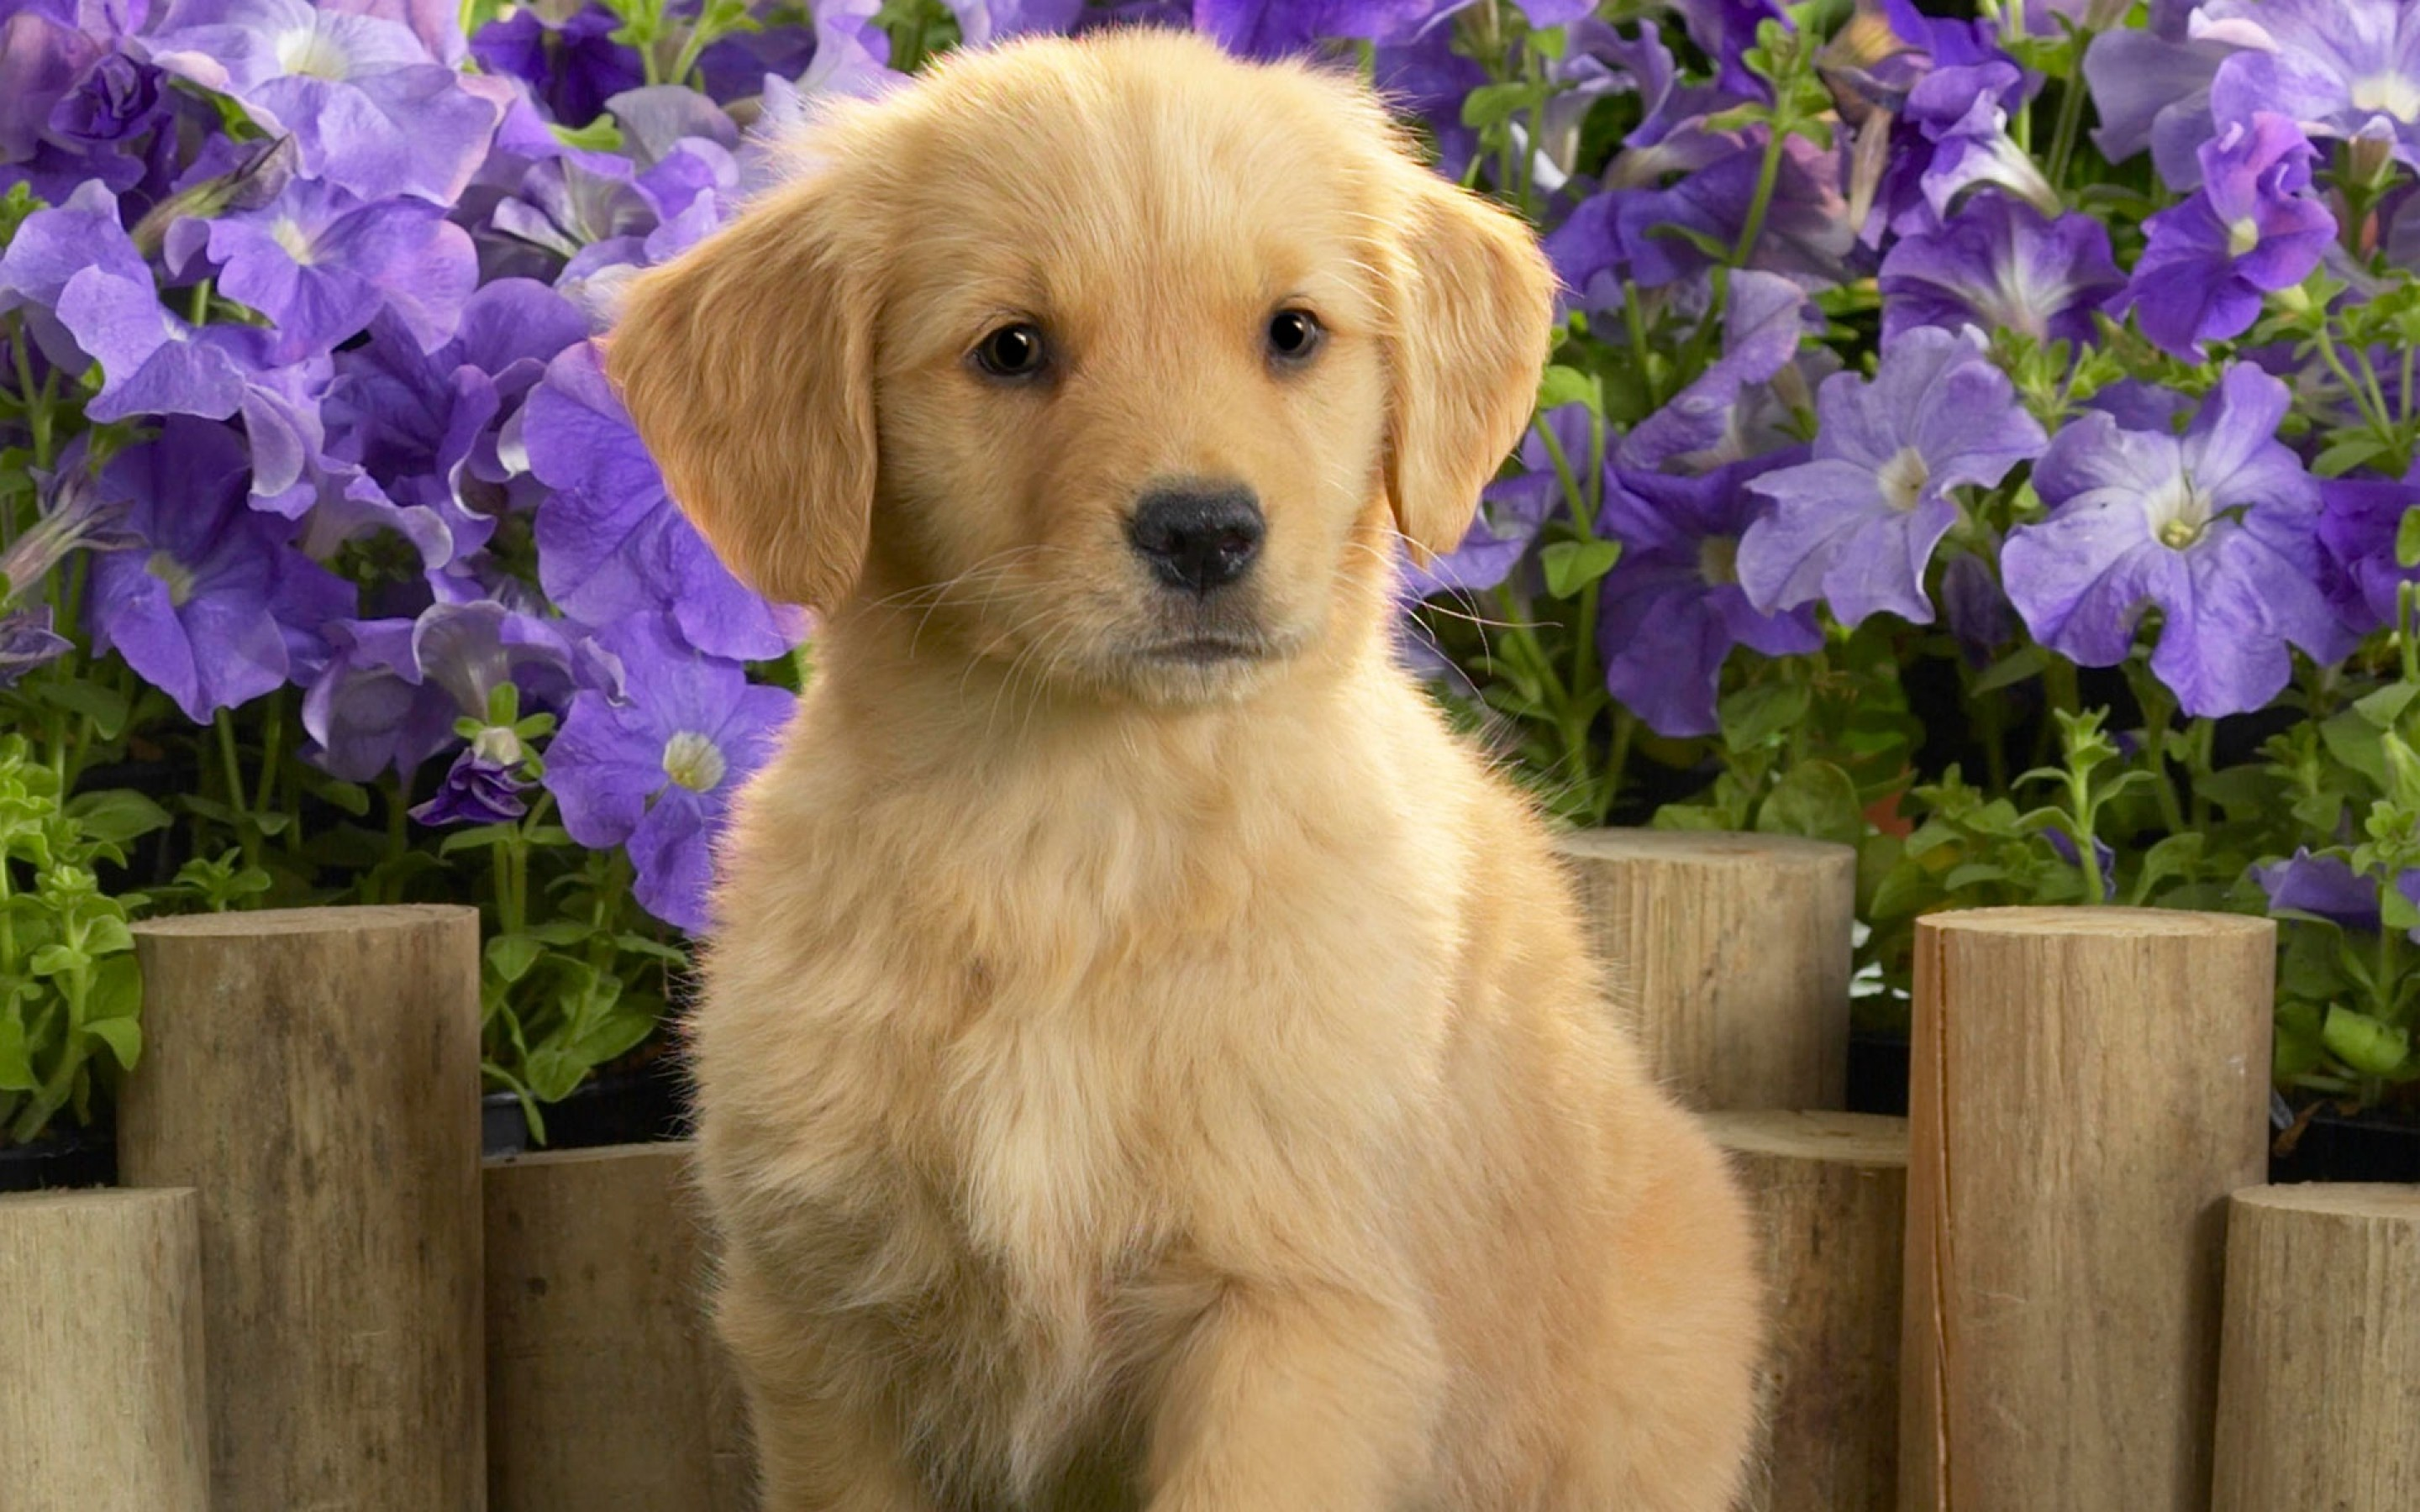 Cute Golden Retriever Wallpaper High Definition High Quality